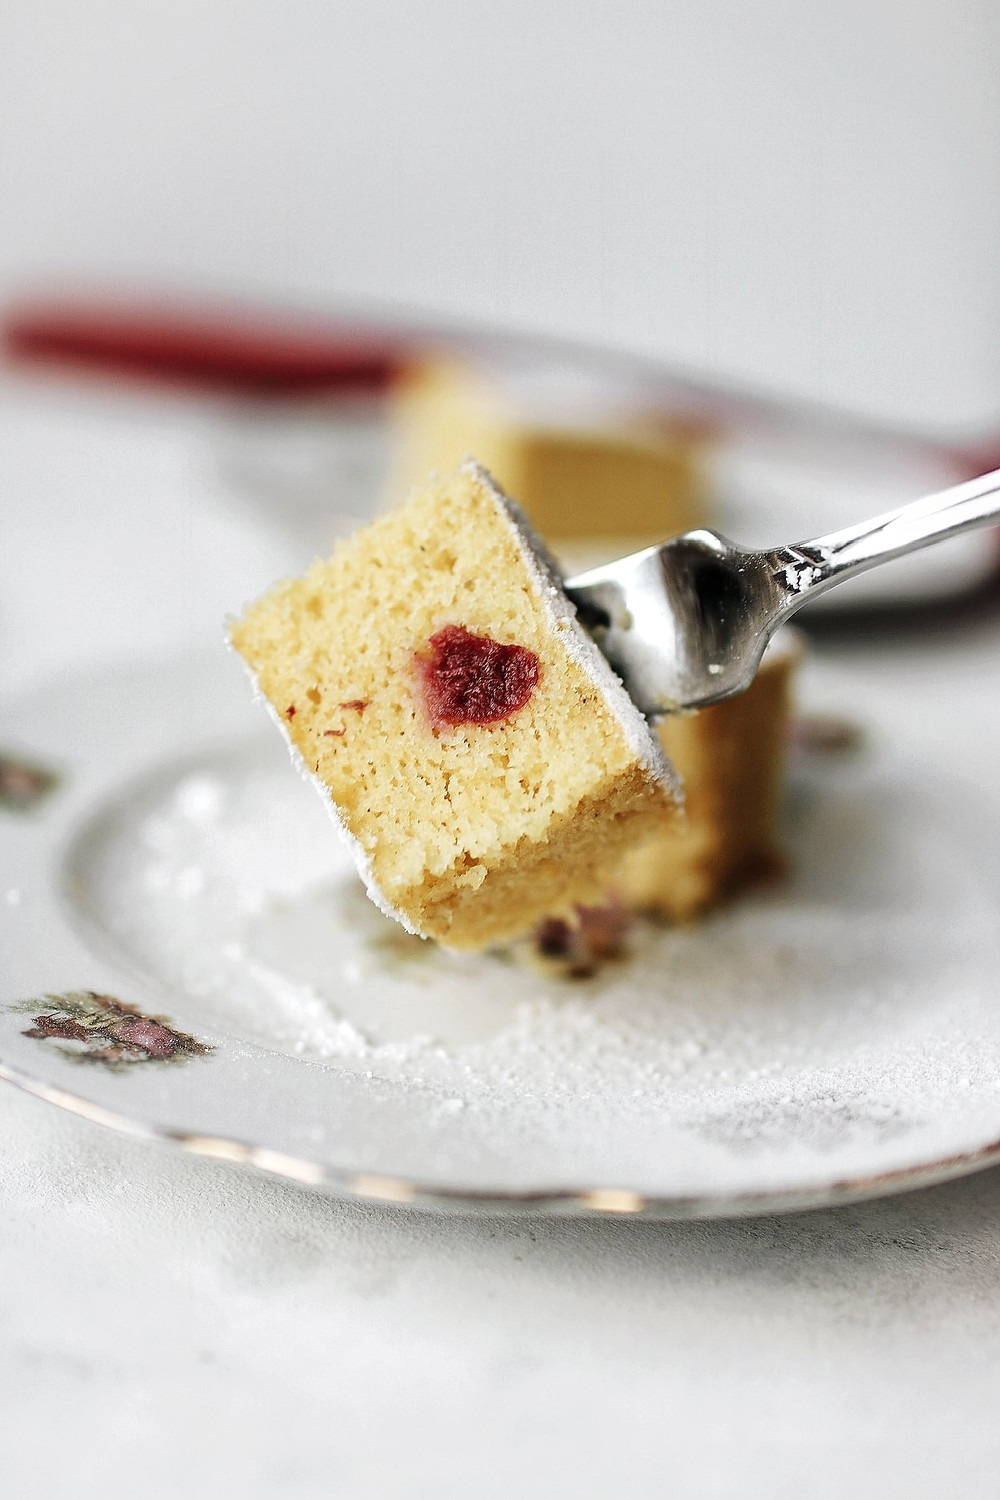 A gluten free and dairy free cornmeal and sour cherry cake piece on a fork.